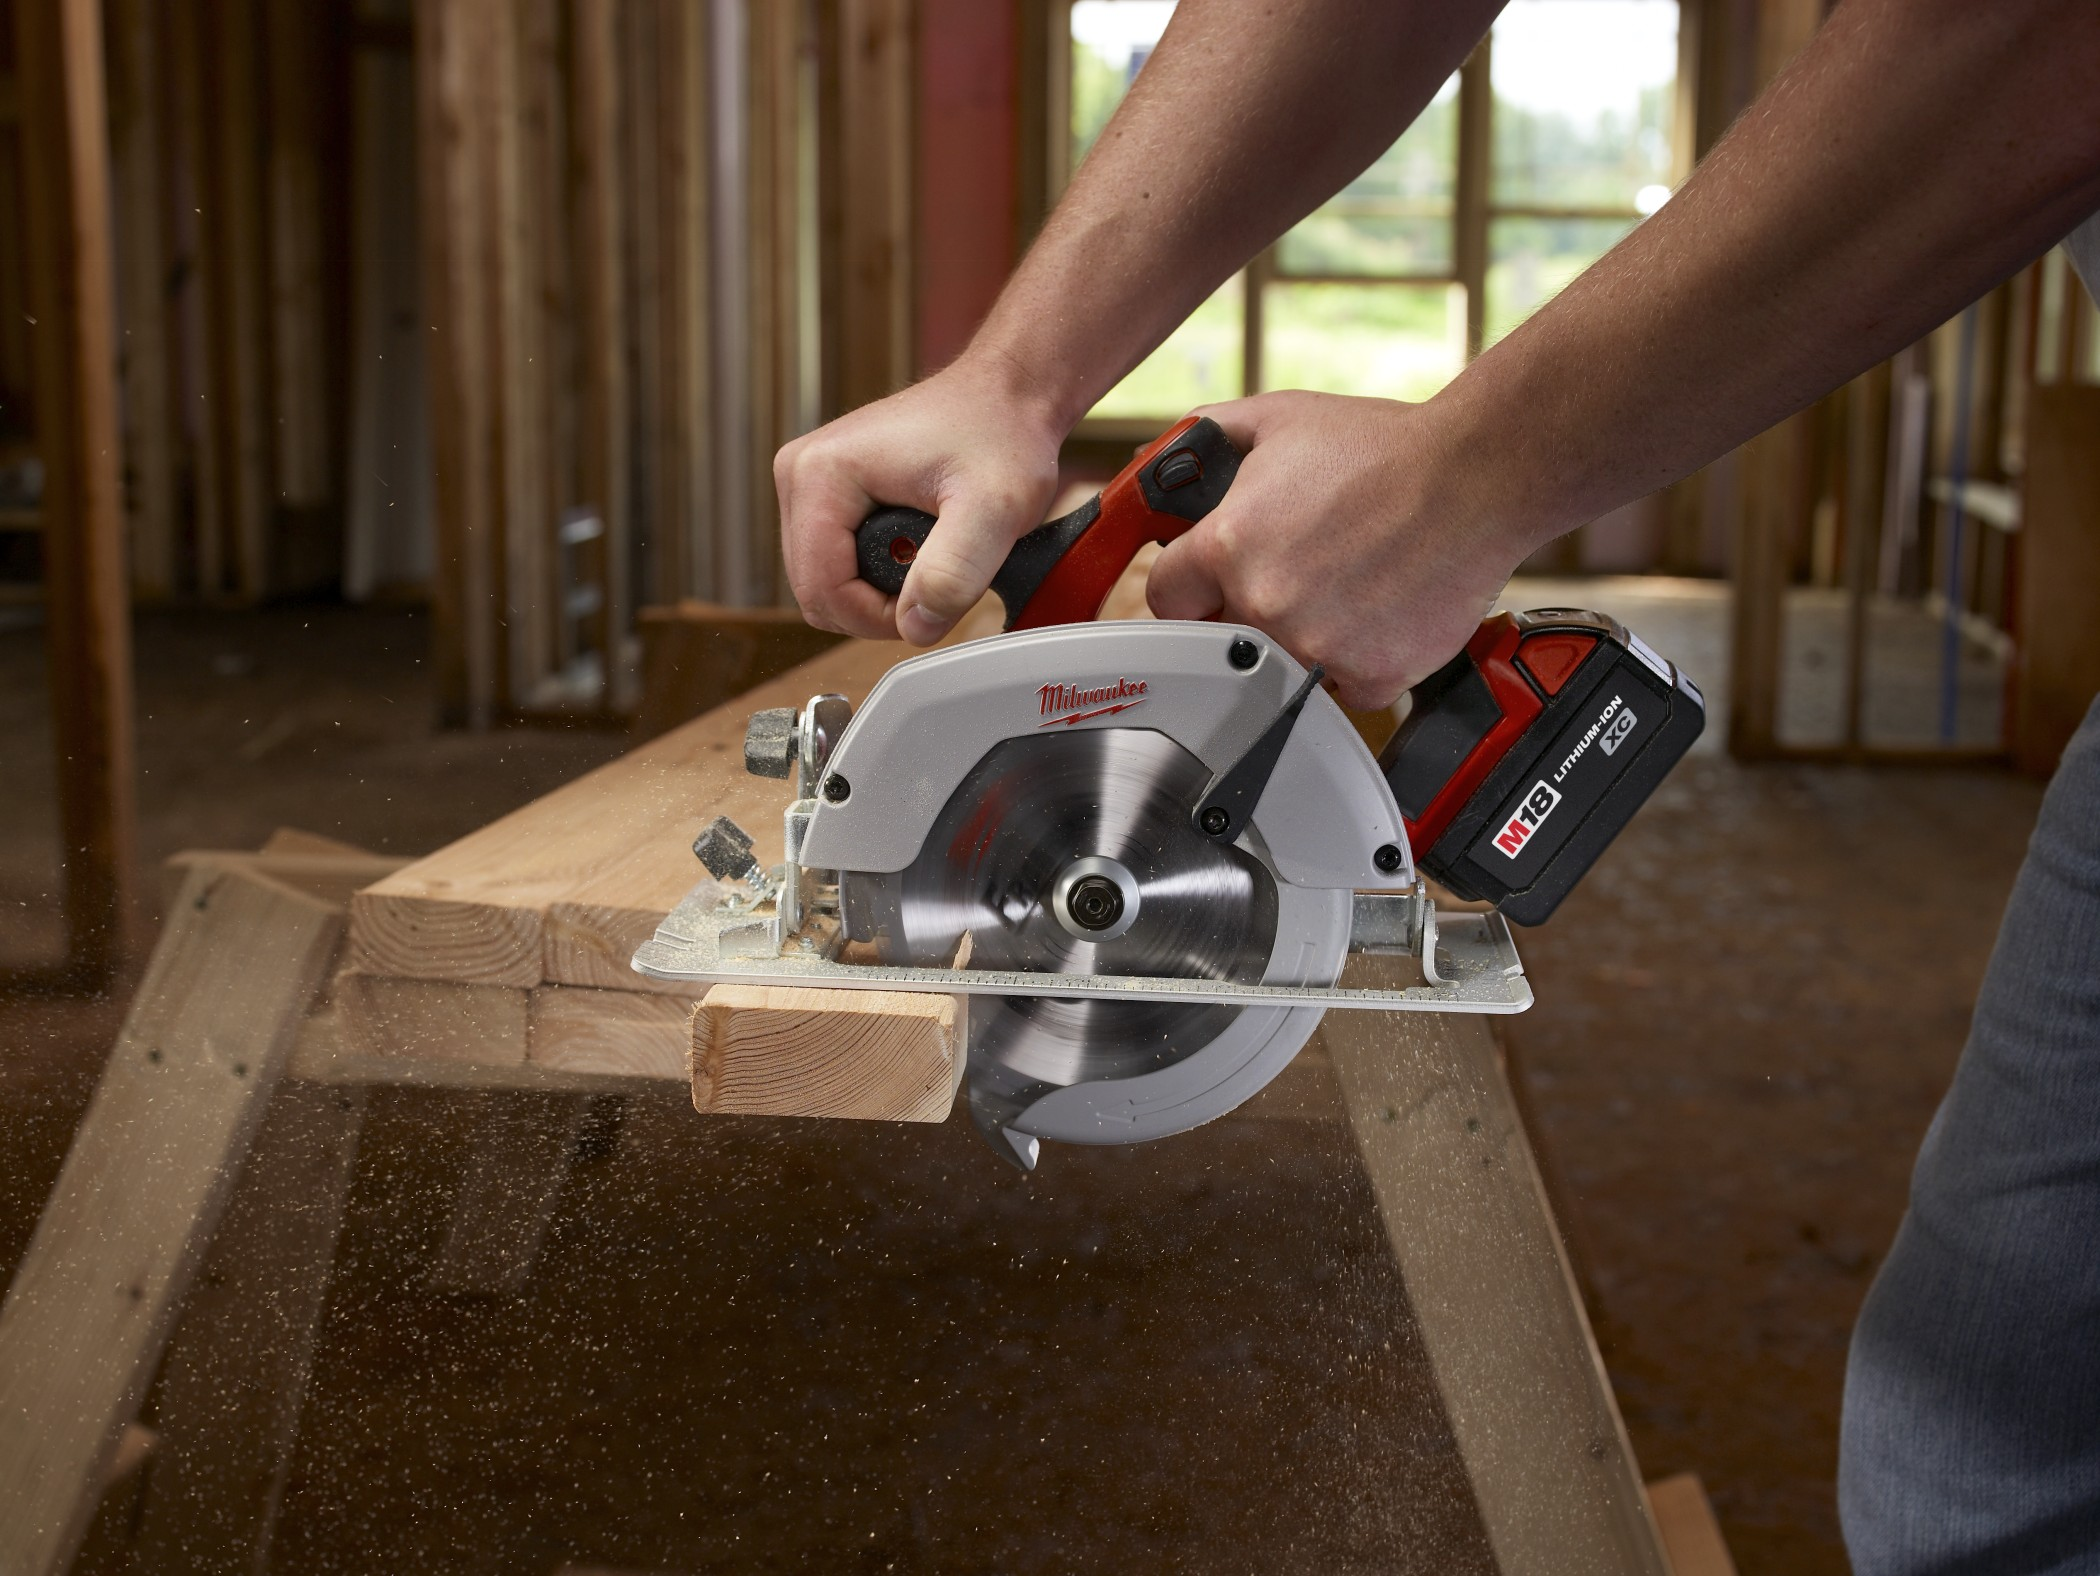 How to select a circular saw pro construction guide how to select a circular saw the 7 and 5 inch blade saws are generally ideal keyboard keysfo Image collections